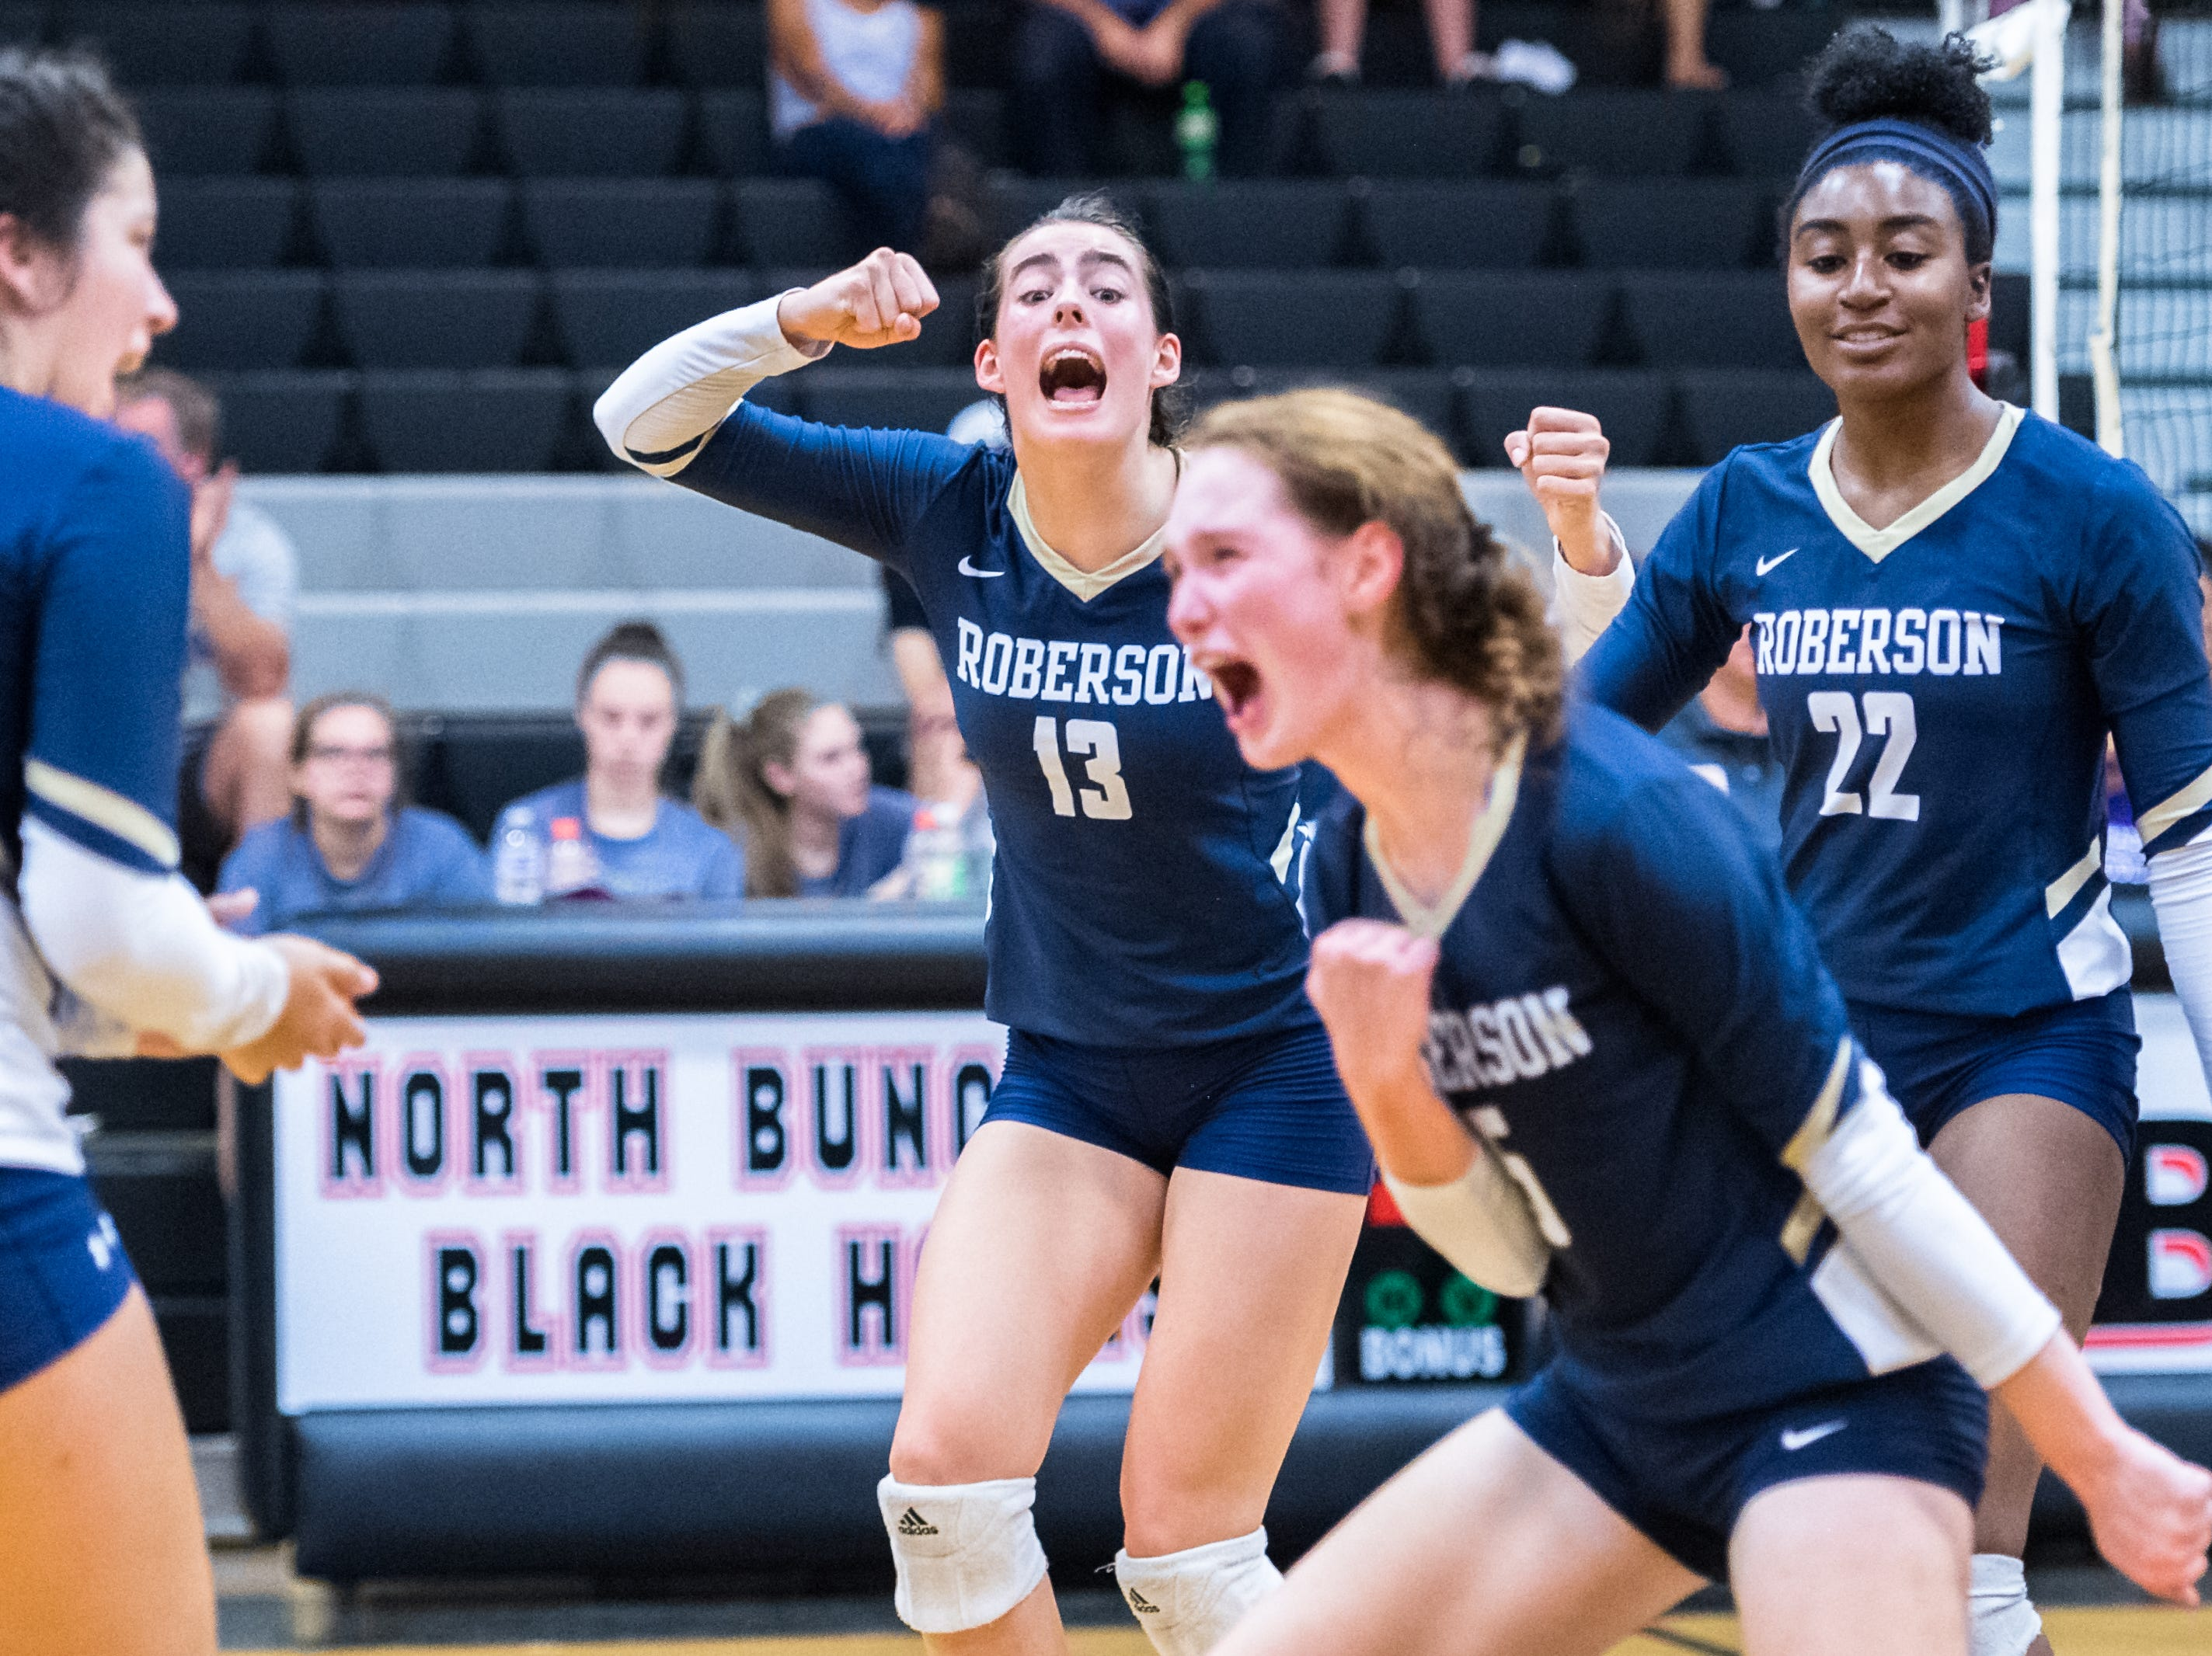 Roberson's Isabella Field, Simone Tezzo and  Amy Webster celebrate during their game against North Buncombe, Aug. 21, 2018.